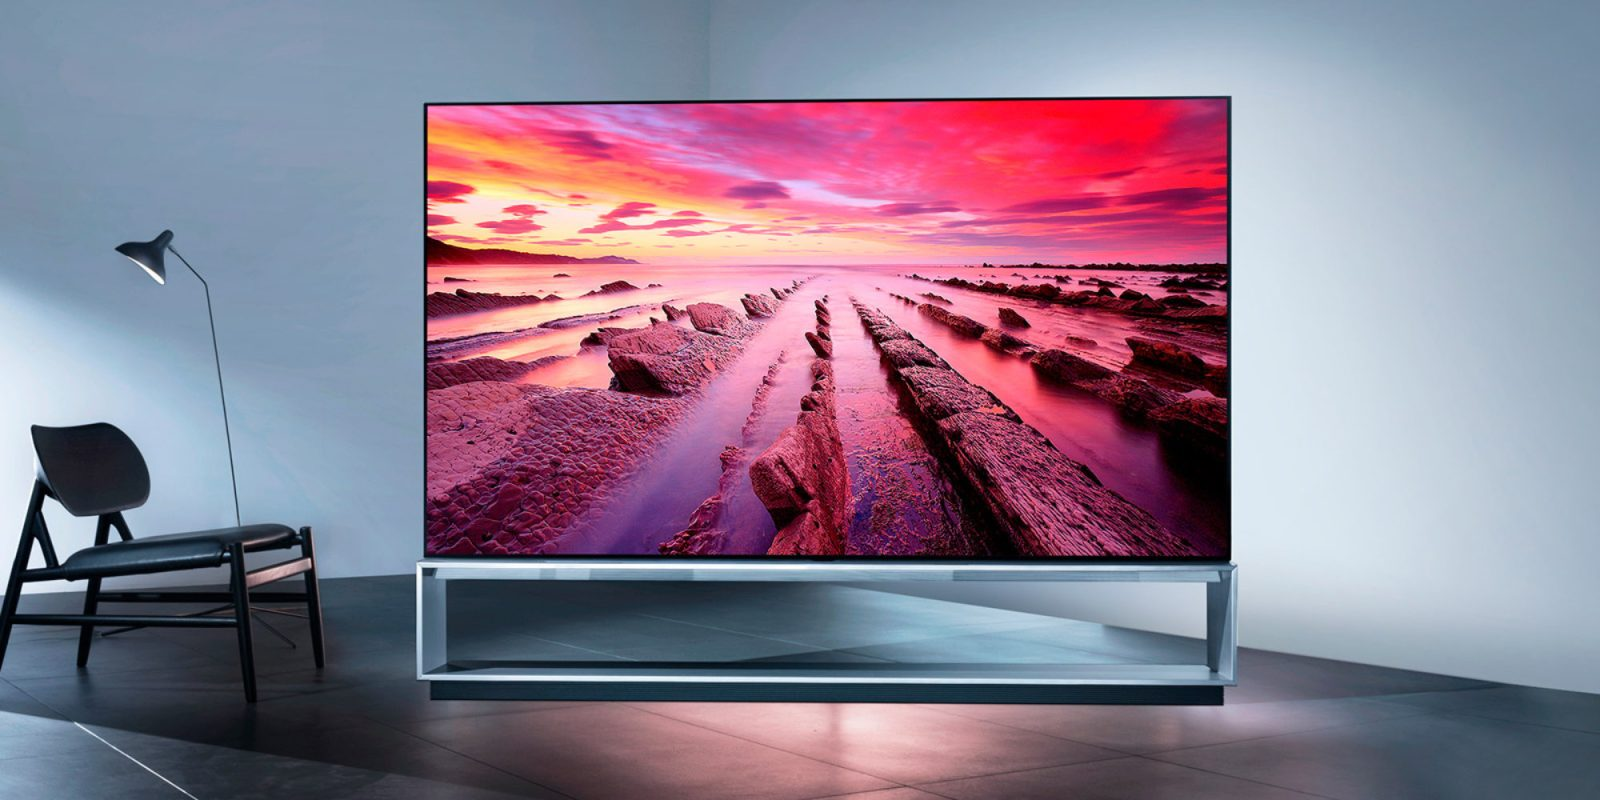 LG's 8K 88-inch OLED TV is its largest yet, available soon